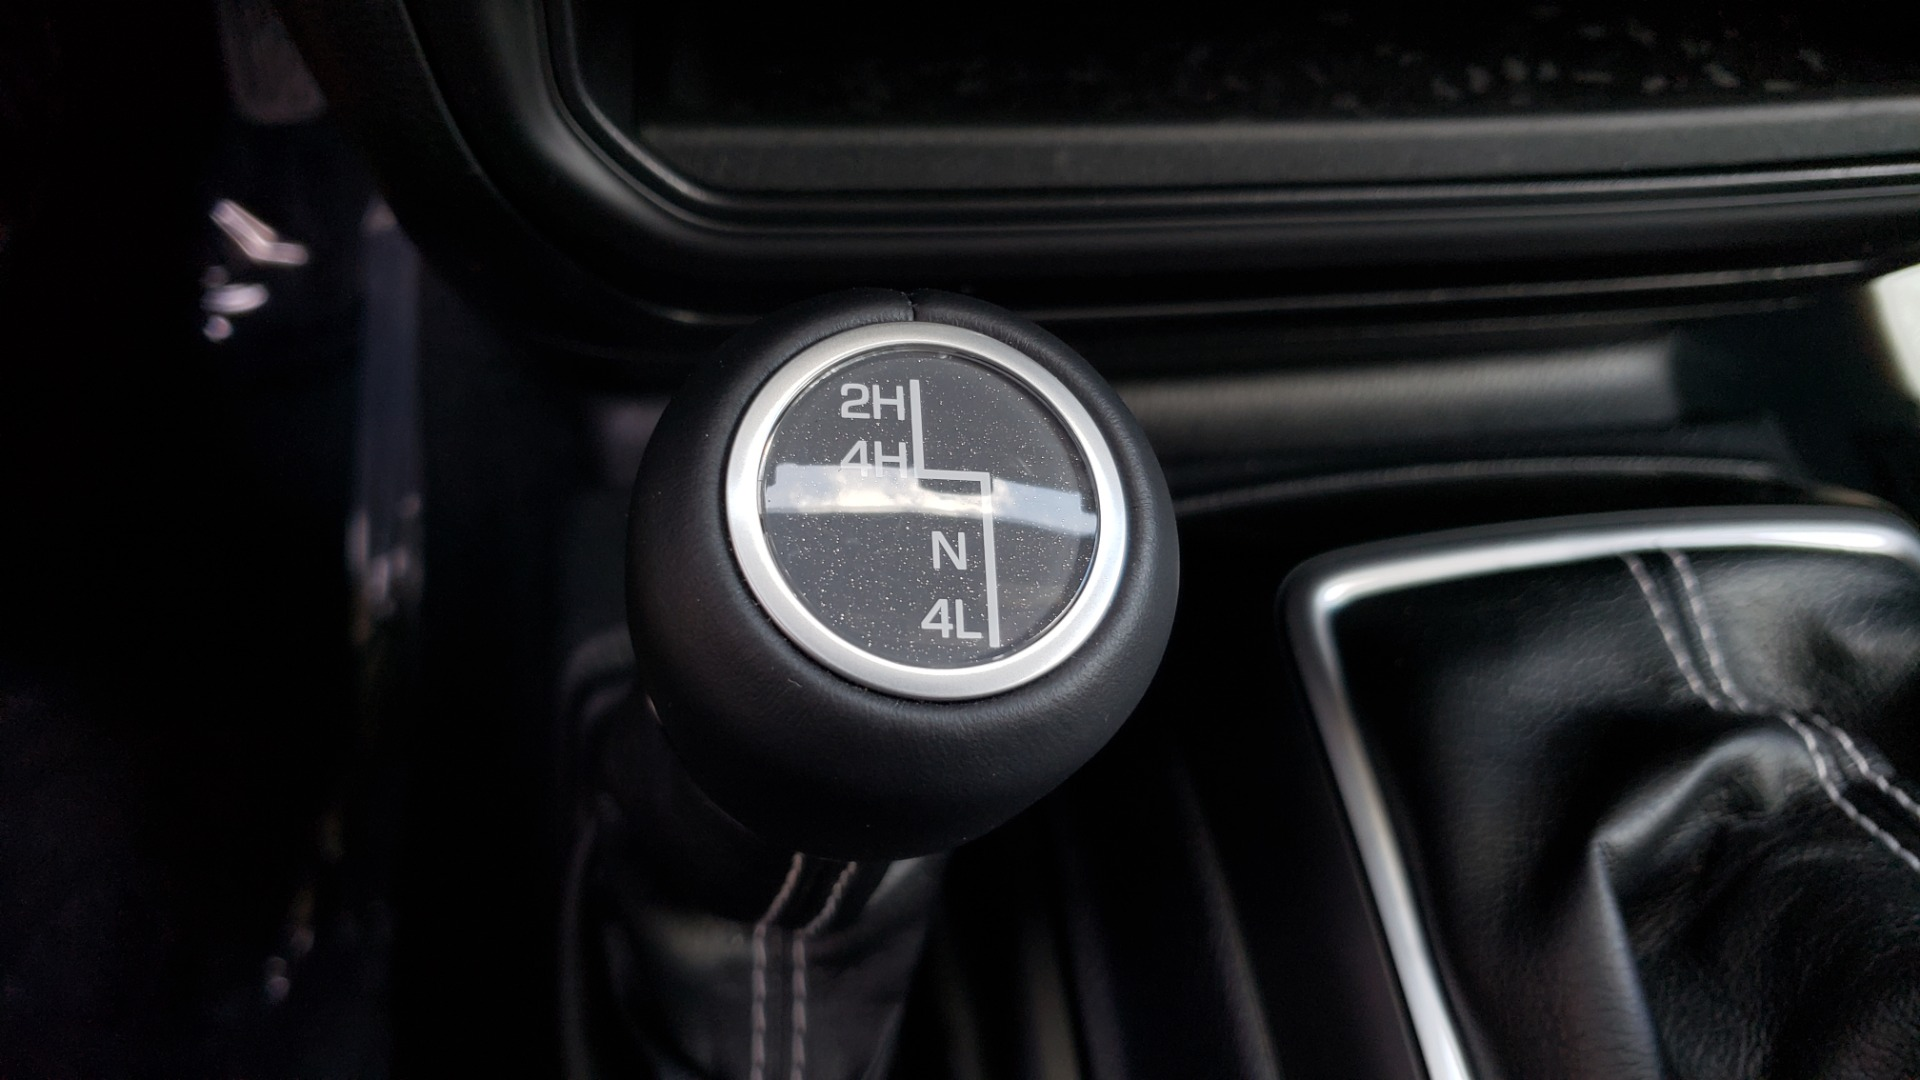 Used 2018 Jeep WRANGLER UNLIMITED SAHARA / 3.6L V6 / 6-SPD MAN / ALPINE / NAV / HTD STS / REARVIEW for sale $43,999 at Formula Imports in Charlotte NC 28227 67